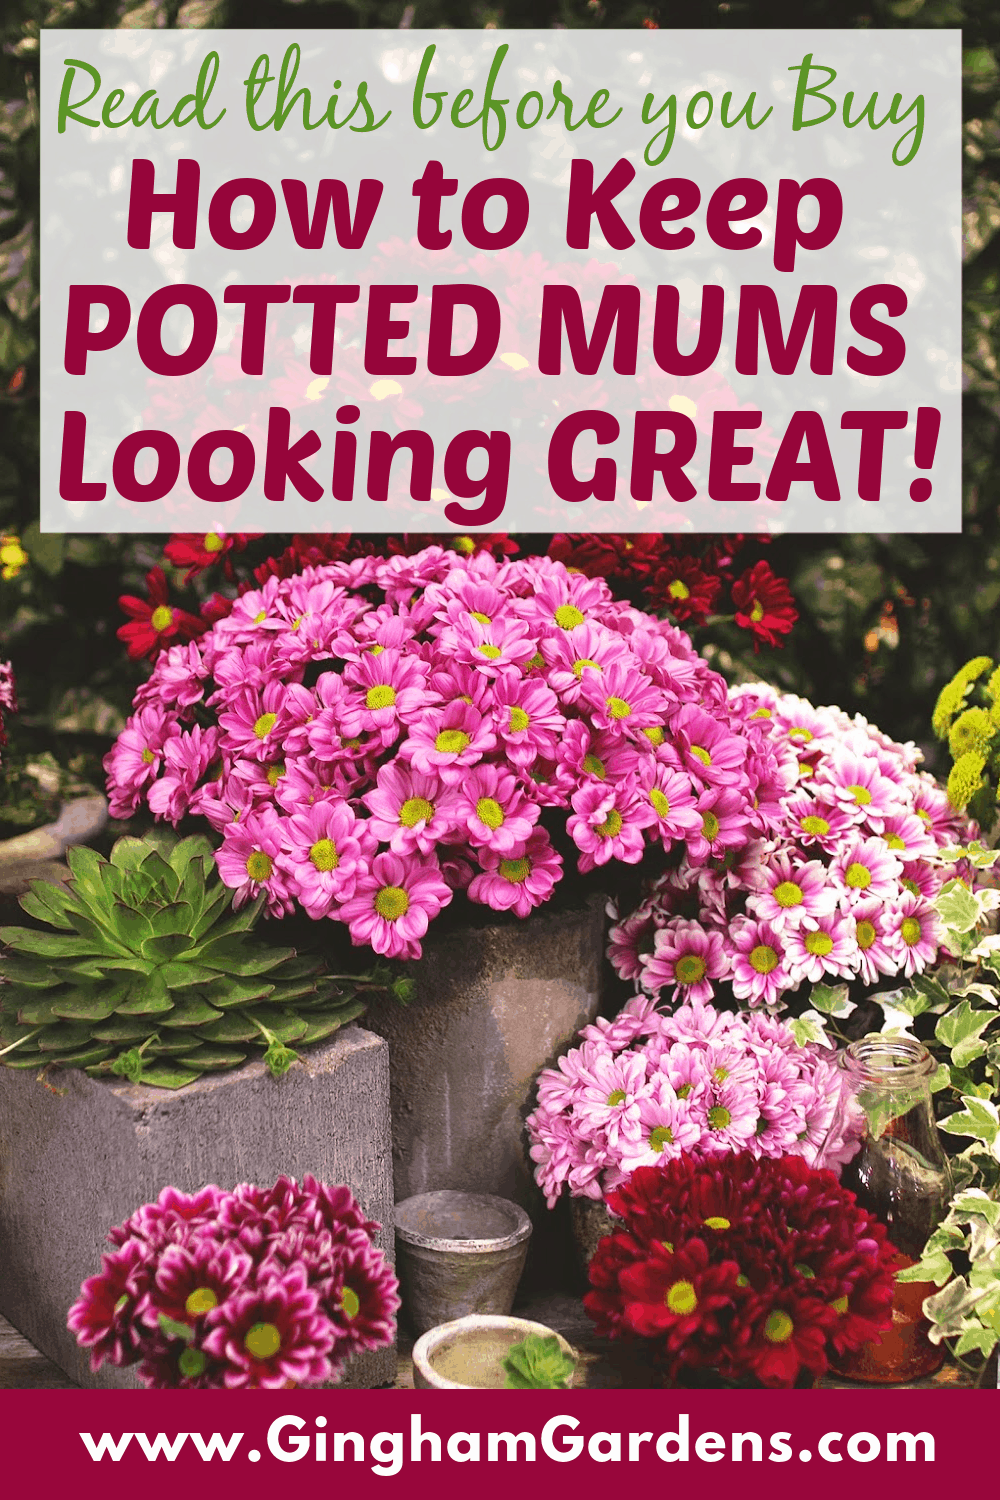 Image of Mum Flowers with Text Overlay - How to Keep Potted Mums Looking Great